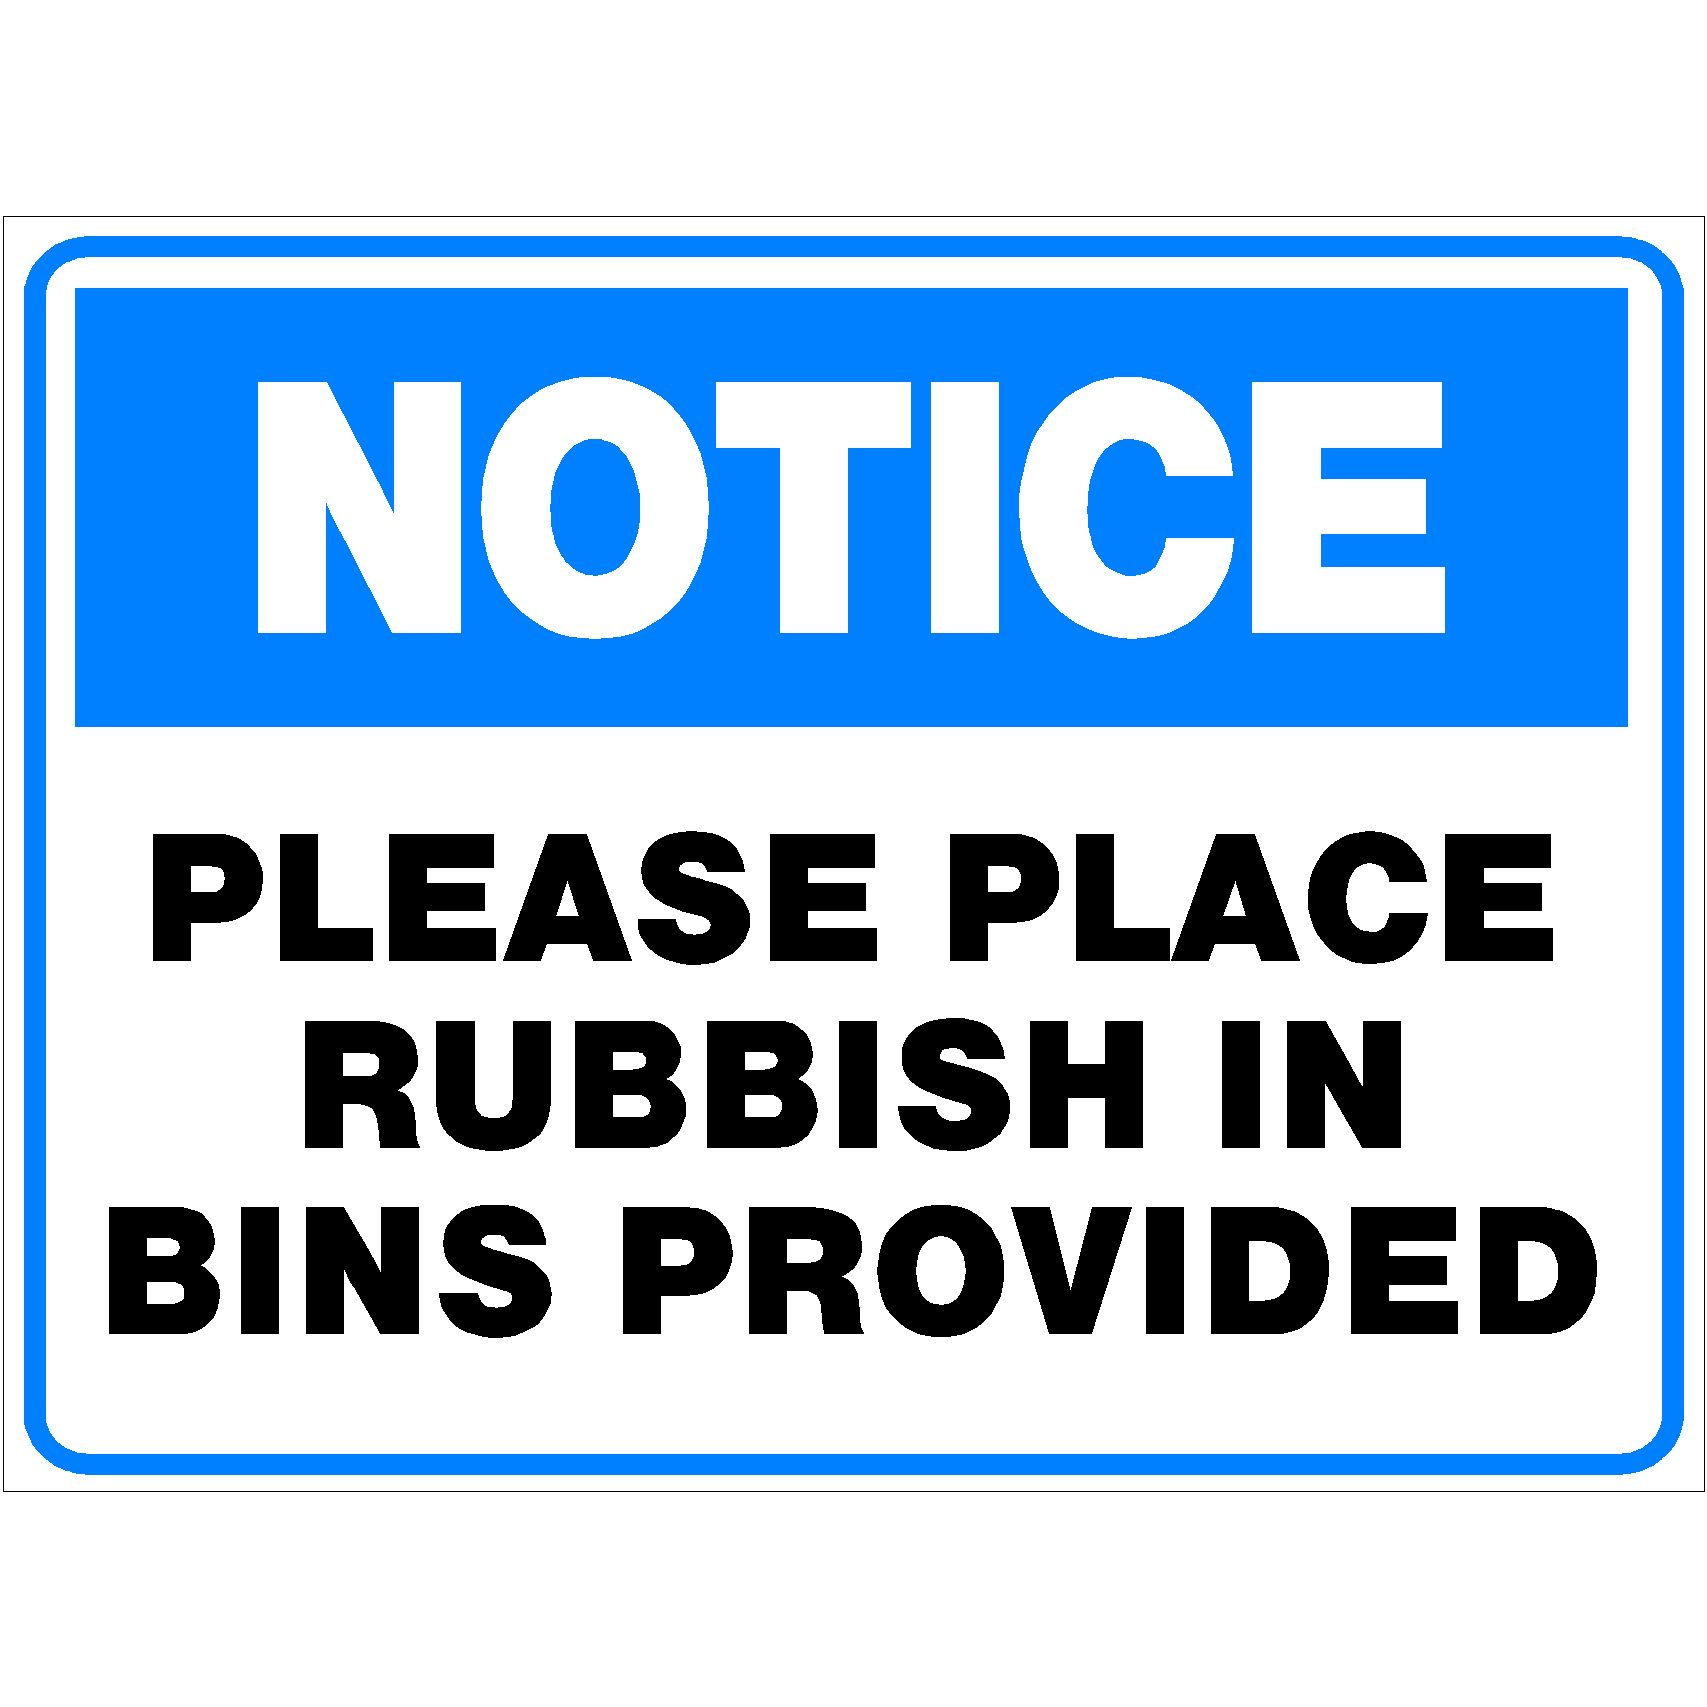 Notice Please Place Rubbish In Bins Provided